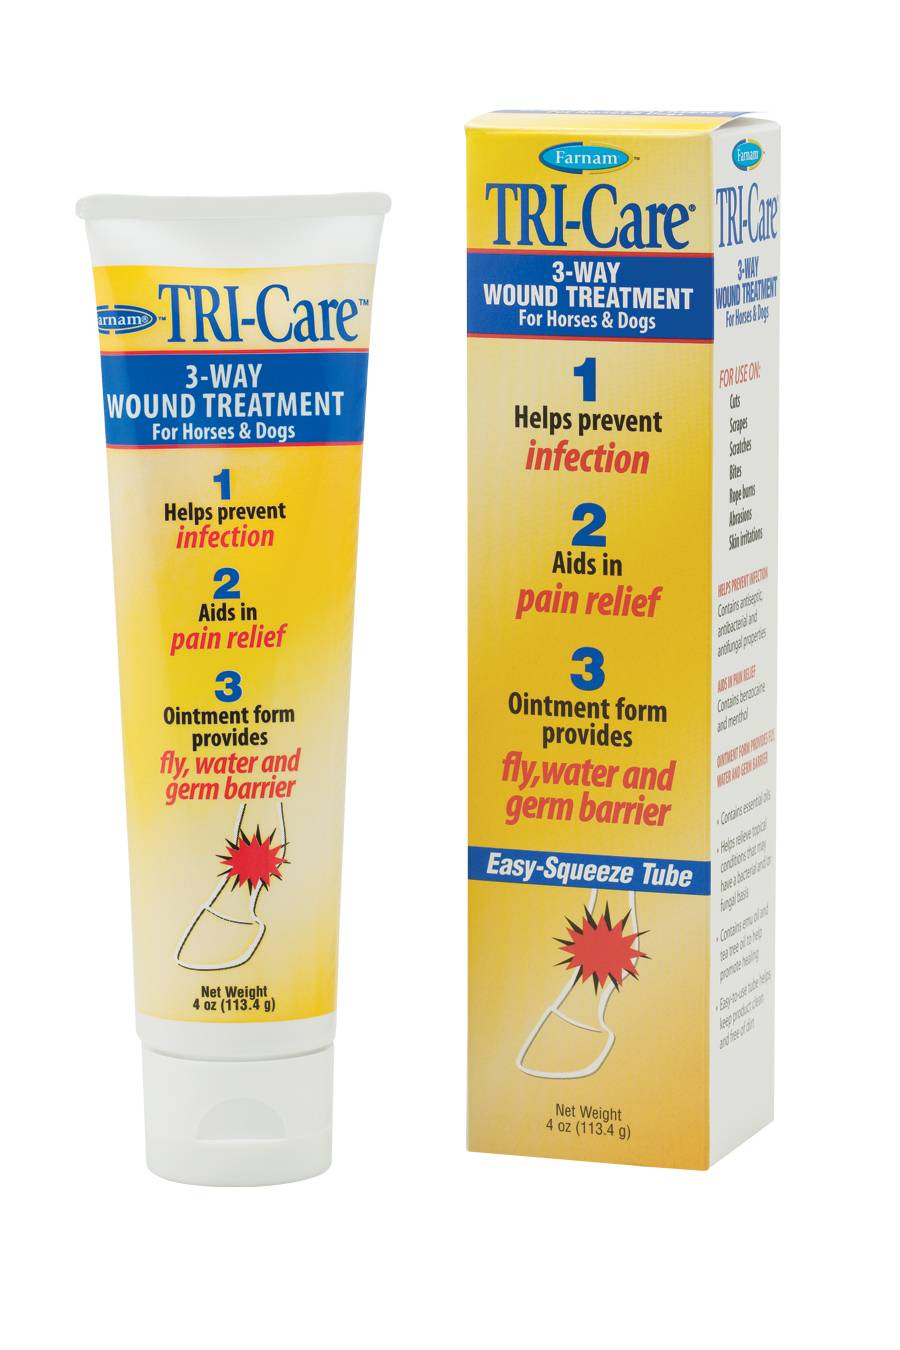 Farnam TRI-Care Triple Action Wound Treatment